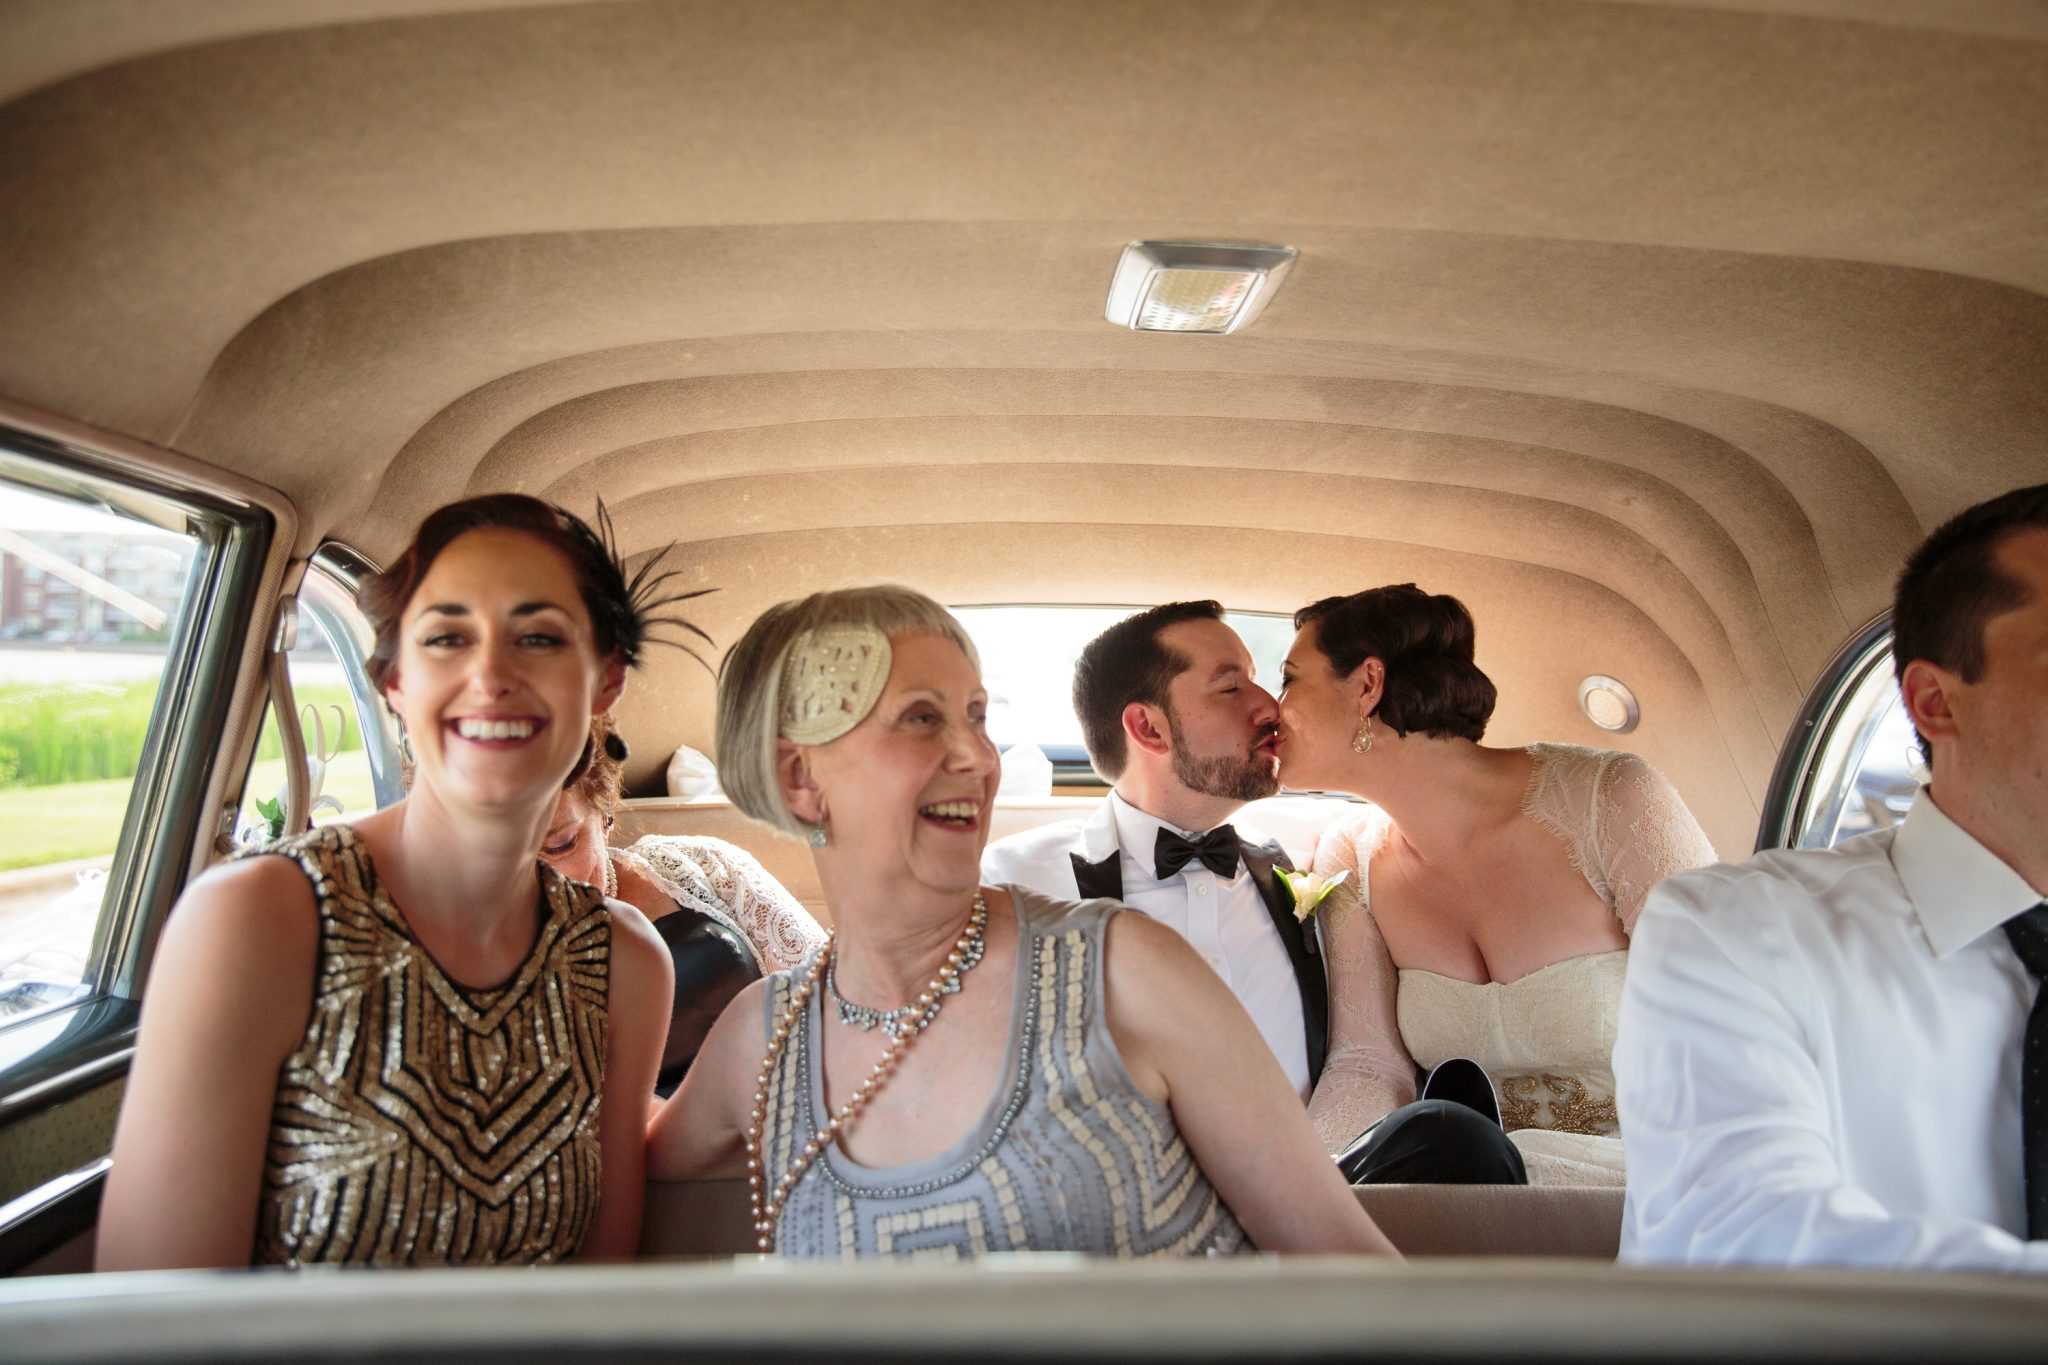 A newlywed couple kisses in the back seat of a vintage limousine